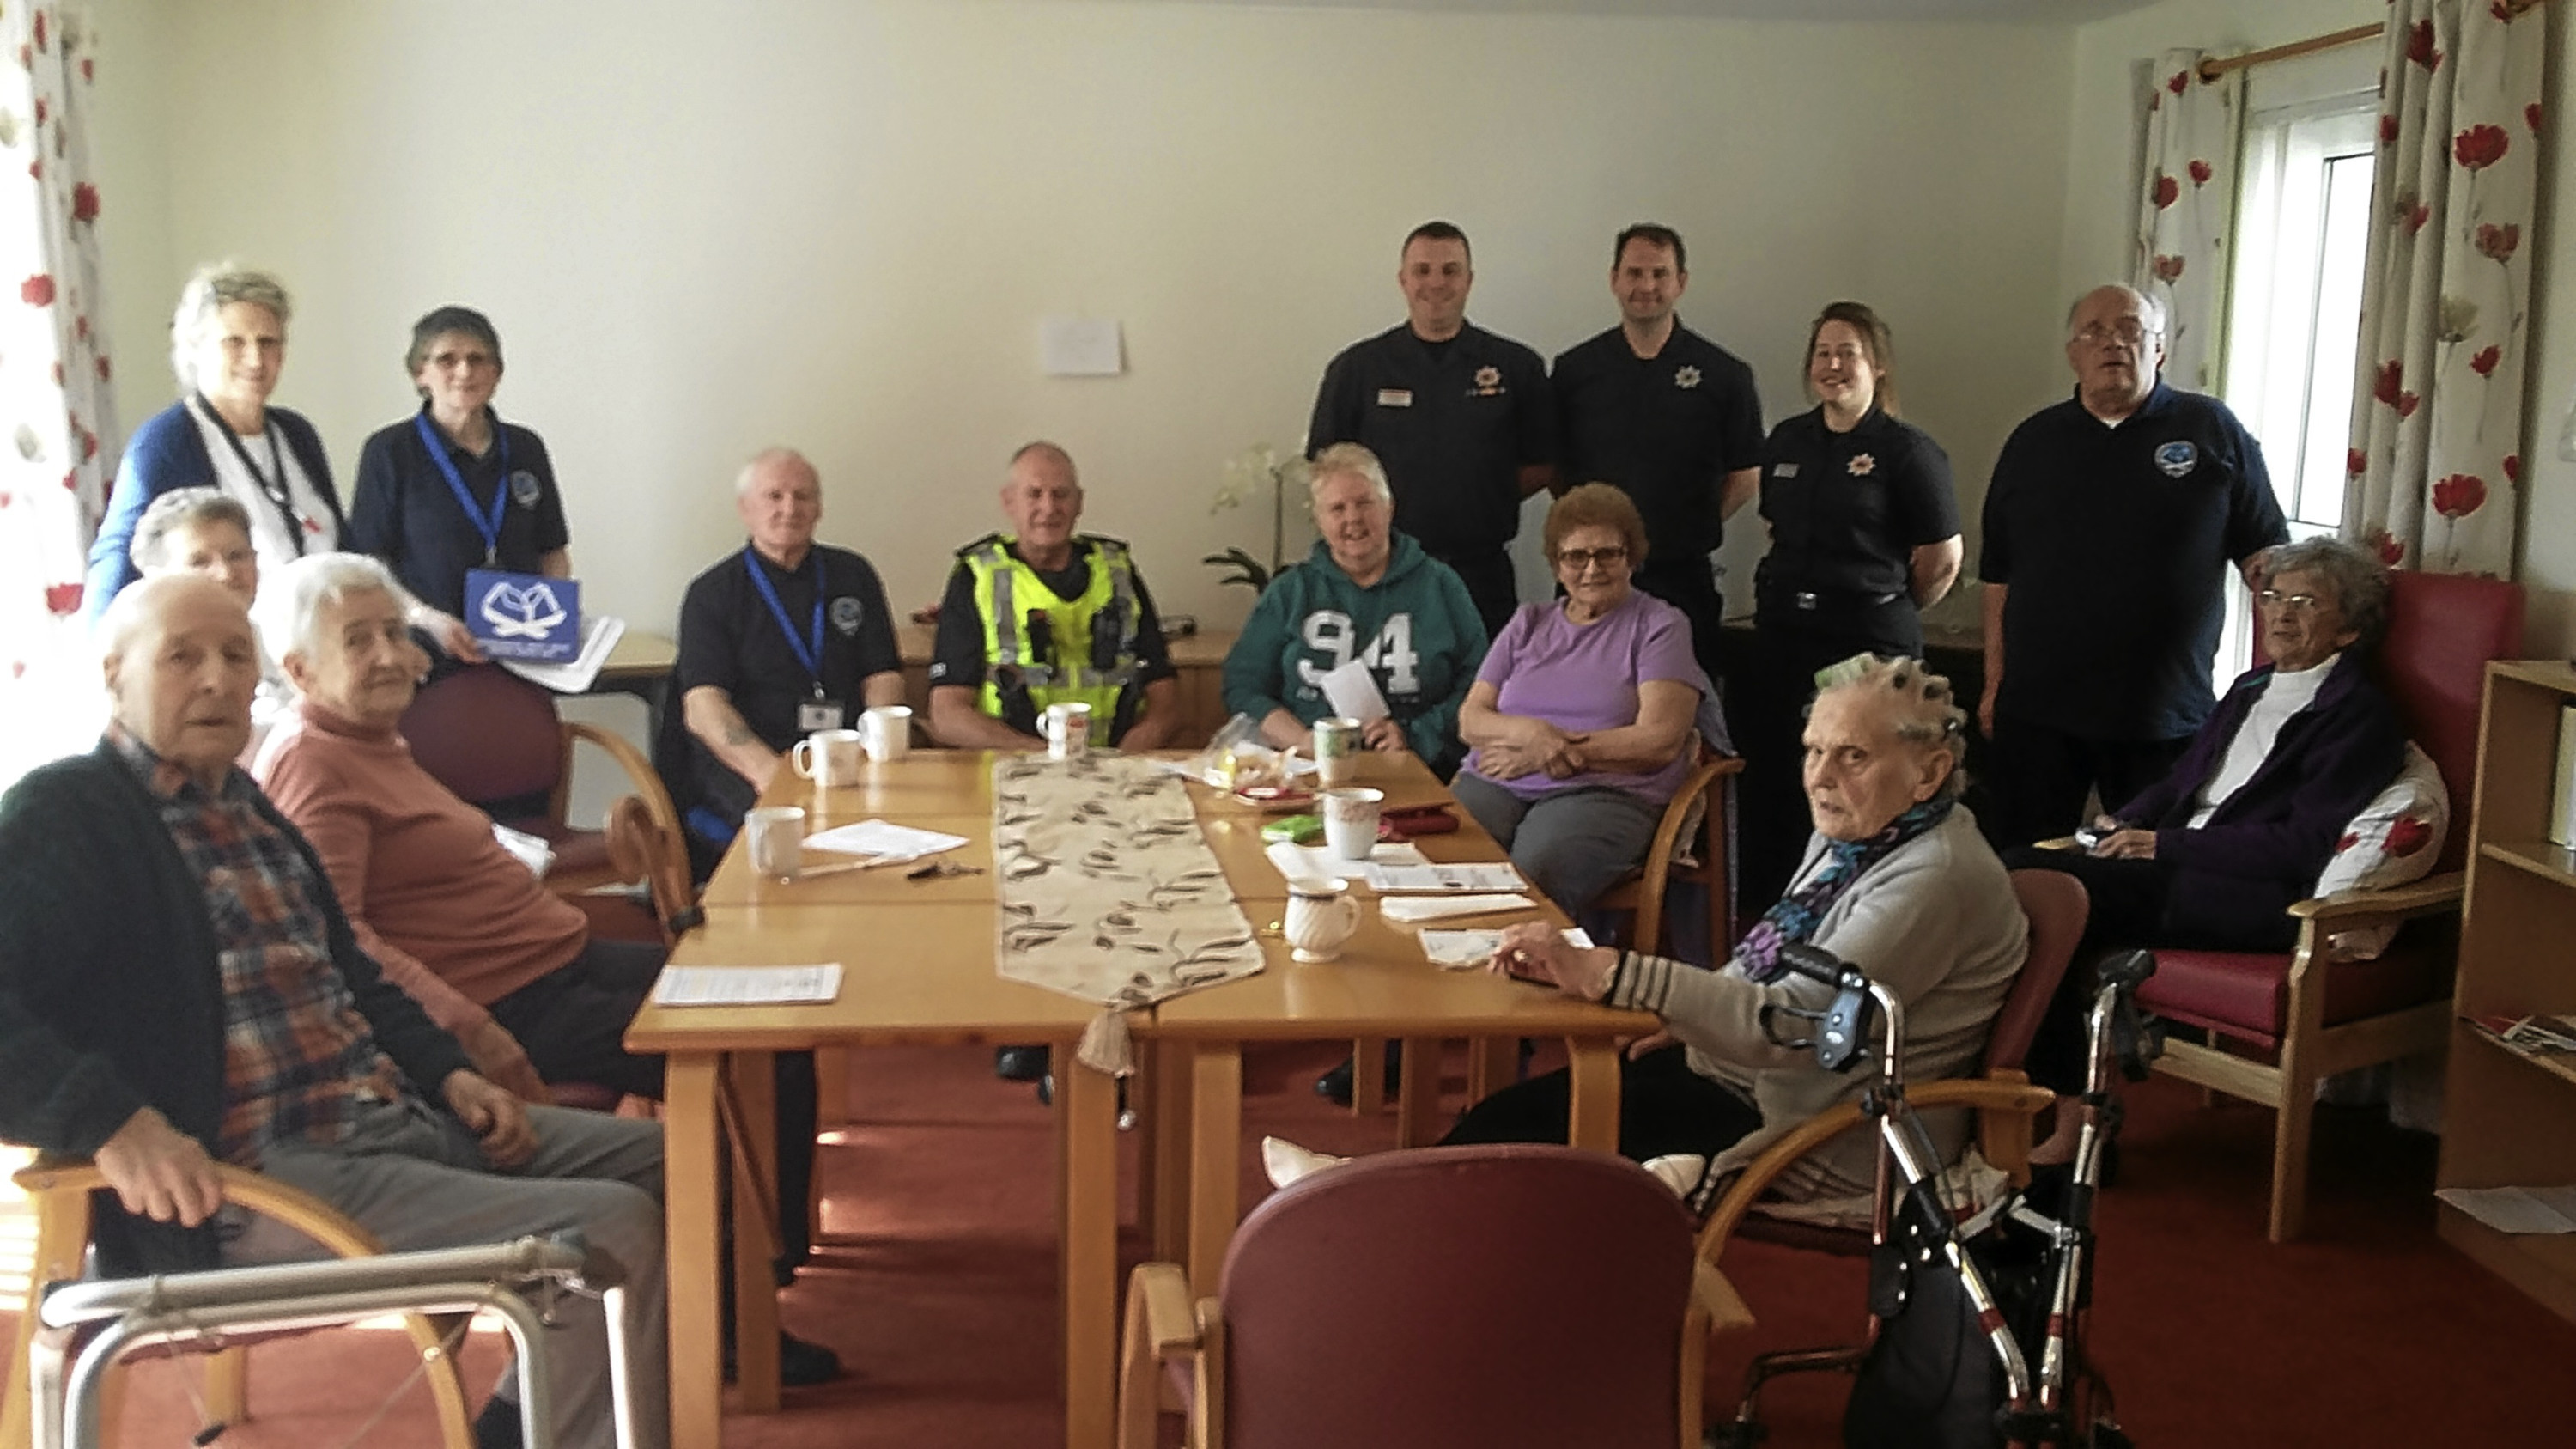 Residents of Burgh House in Leslie were given free home safety lessons by the Scottish Fire and Rescue Service and Police Scotland. Photo shows the fire service's Red Watch Glenrothes and Glenrothes area neighbourhood safety group with residents.